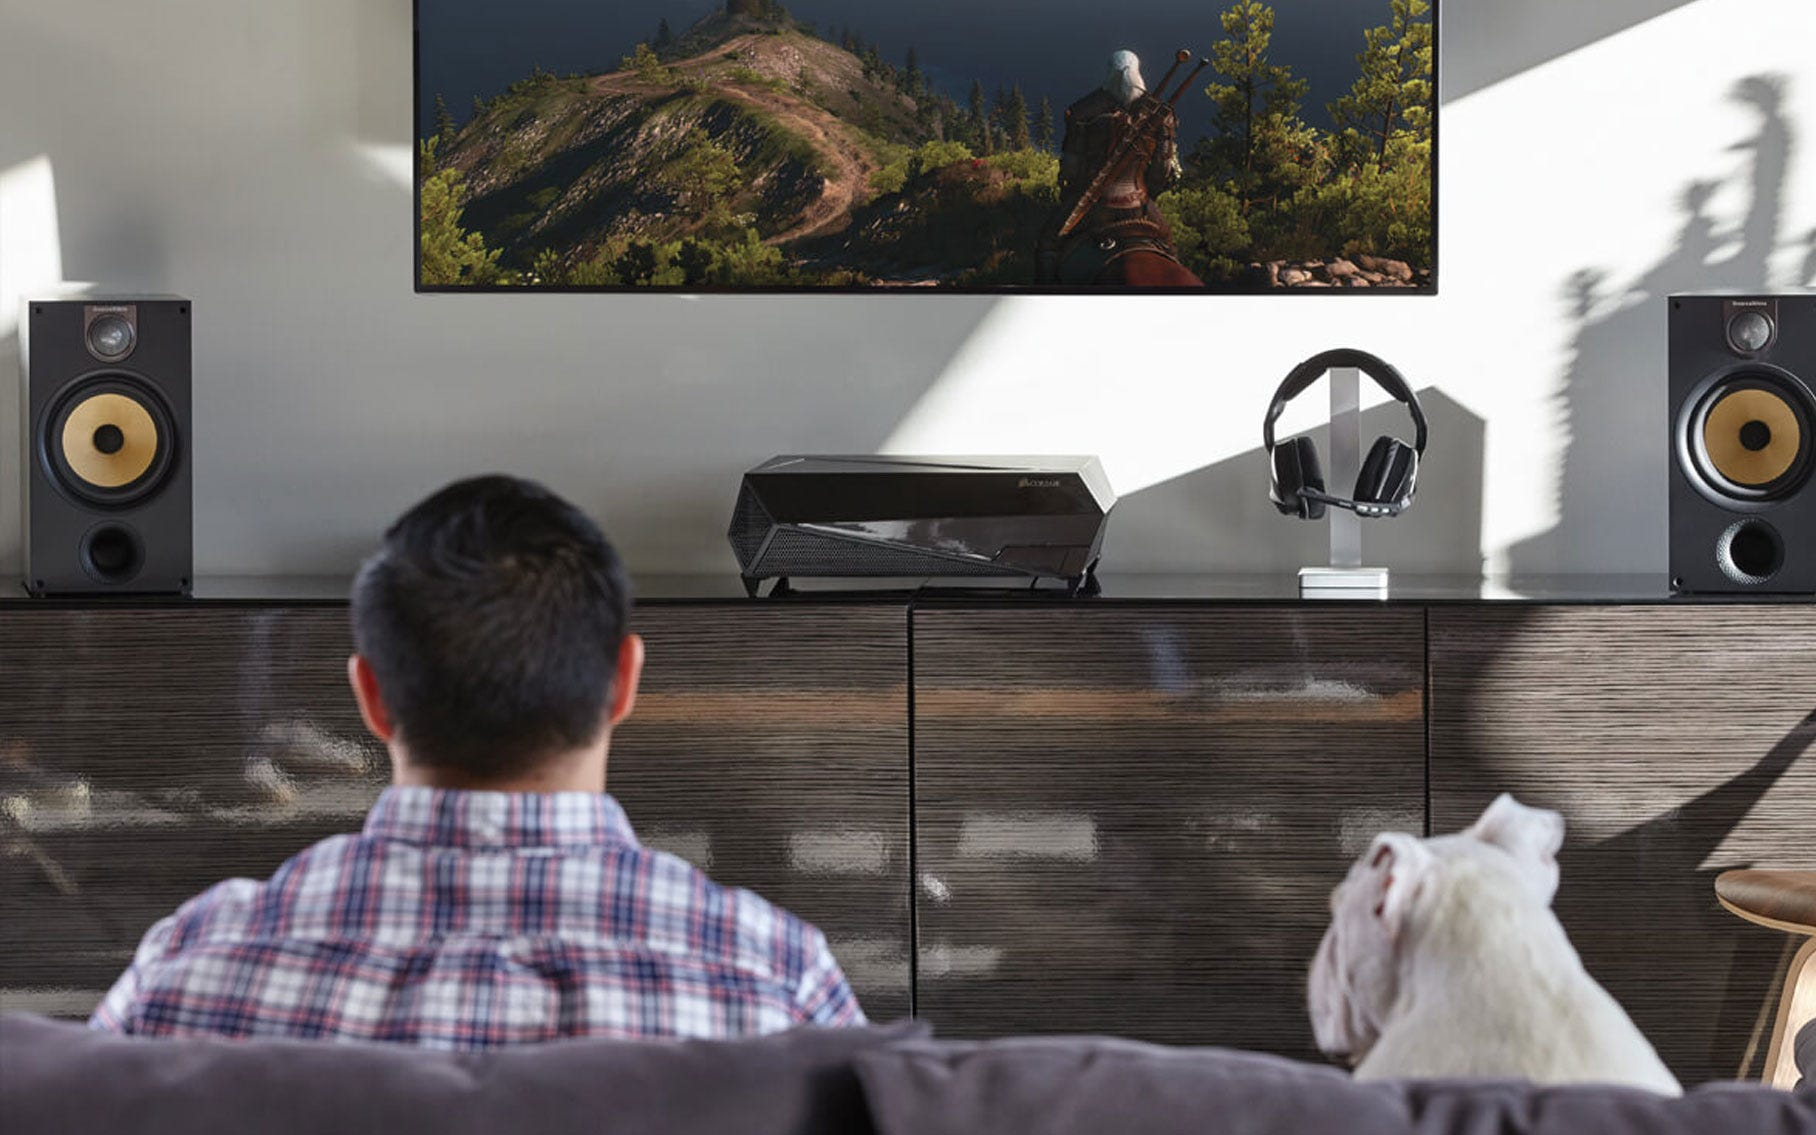 Solutions for living room PC gaming are tricky, but worth it.